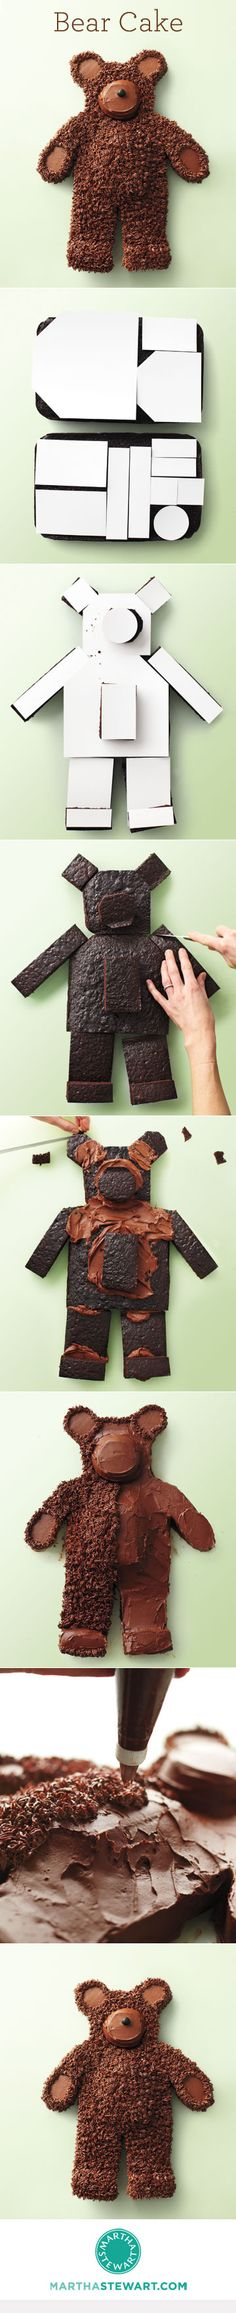 How to Make a Bear Cake.